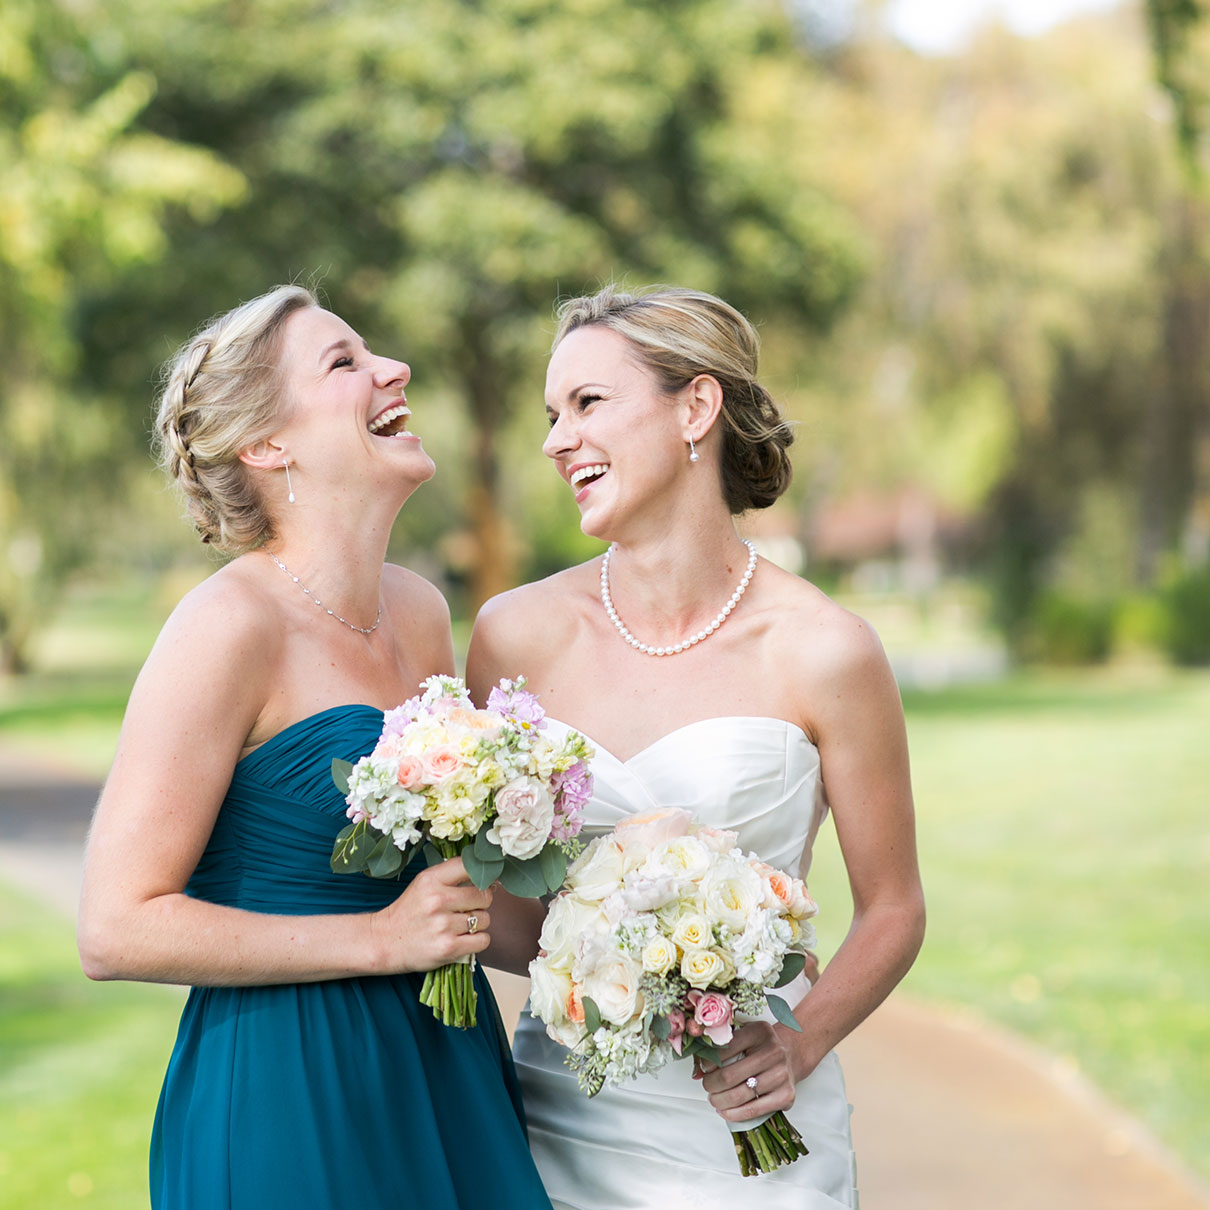 Wedding Wednesdays Q&A: Who Pays For Bridesmaid Dress